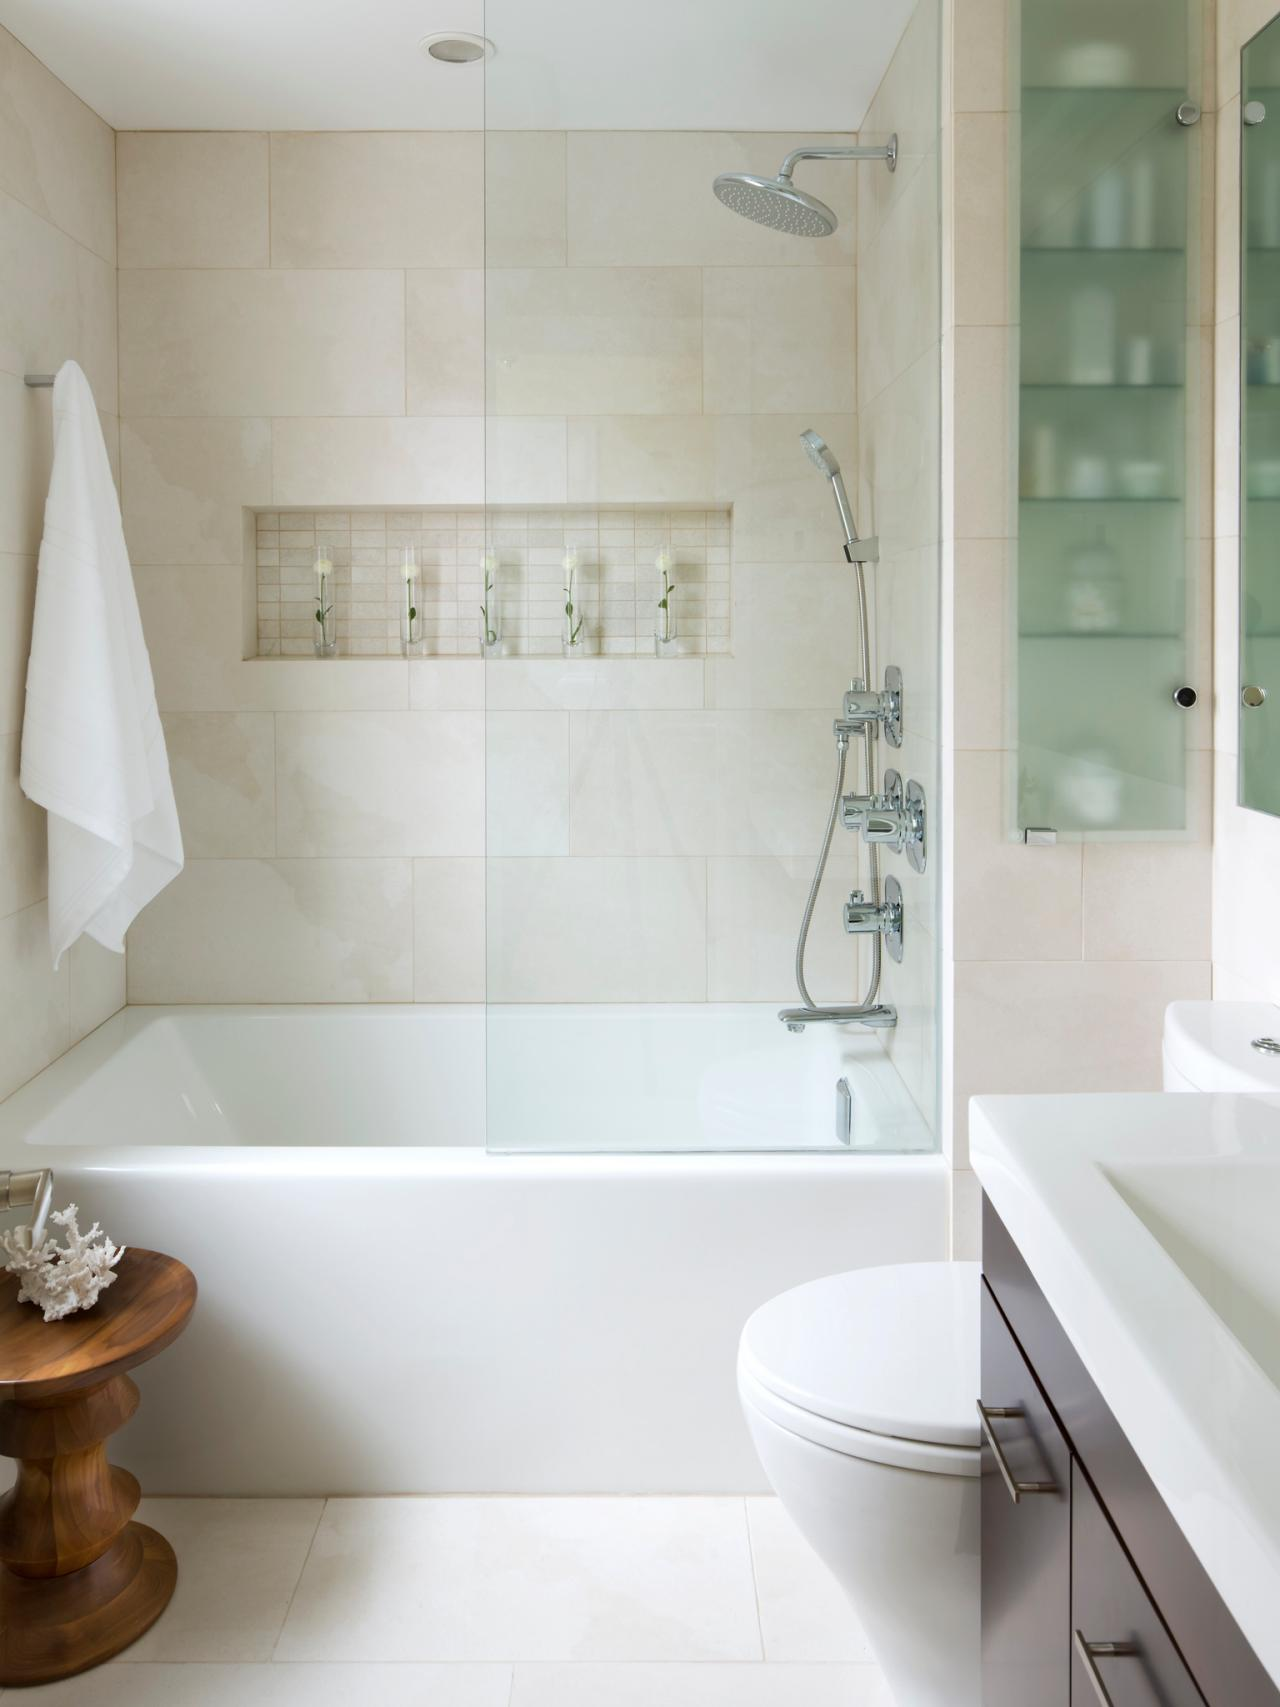 Small Bathtub Ideas And Options Pictures  Tips From HGTV HGTV - Small bathroom bathtub ideas